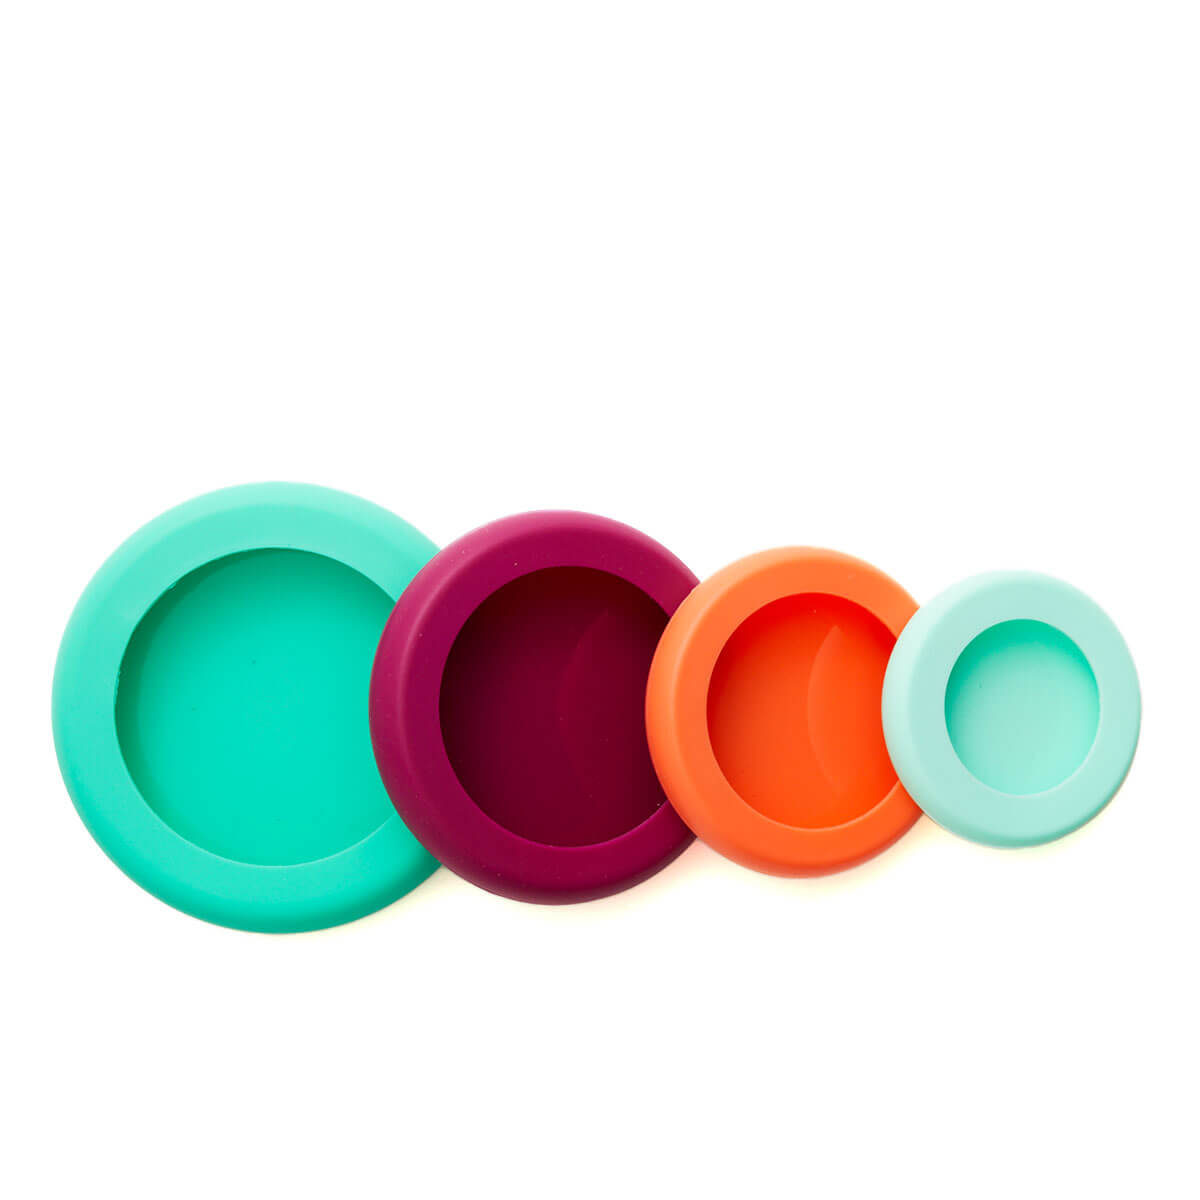 Silicone Food Huggers - four